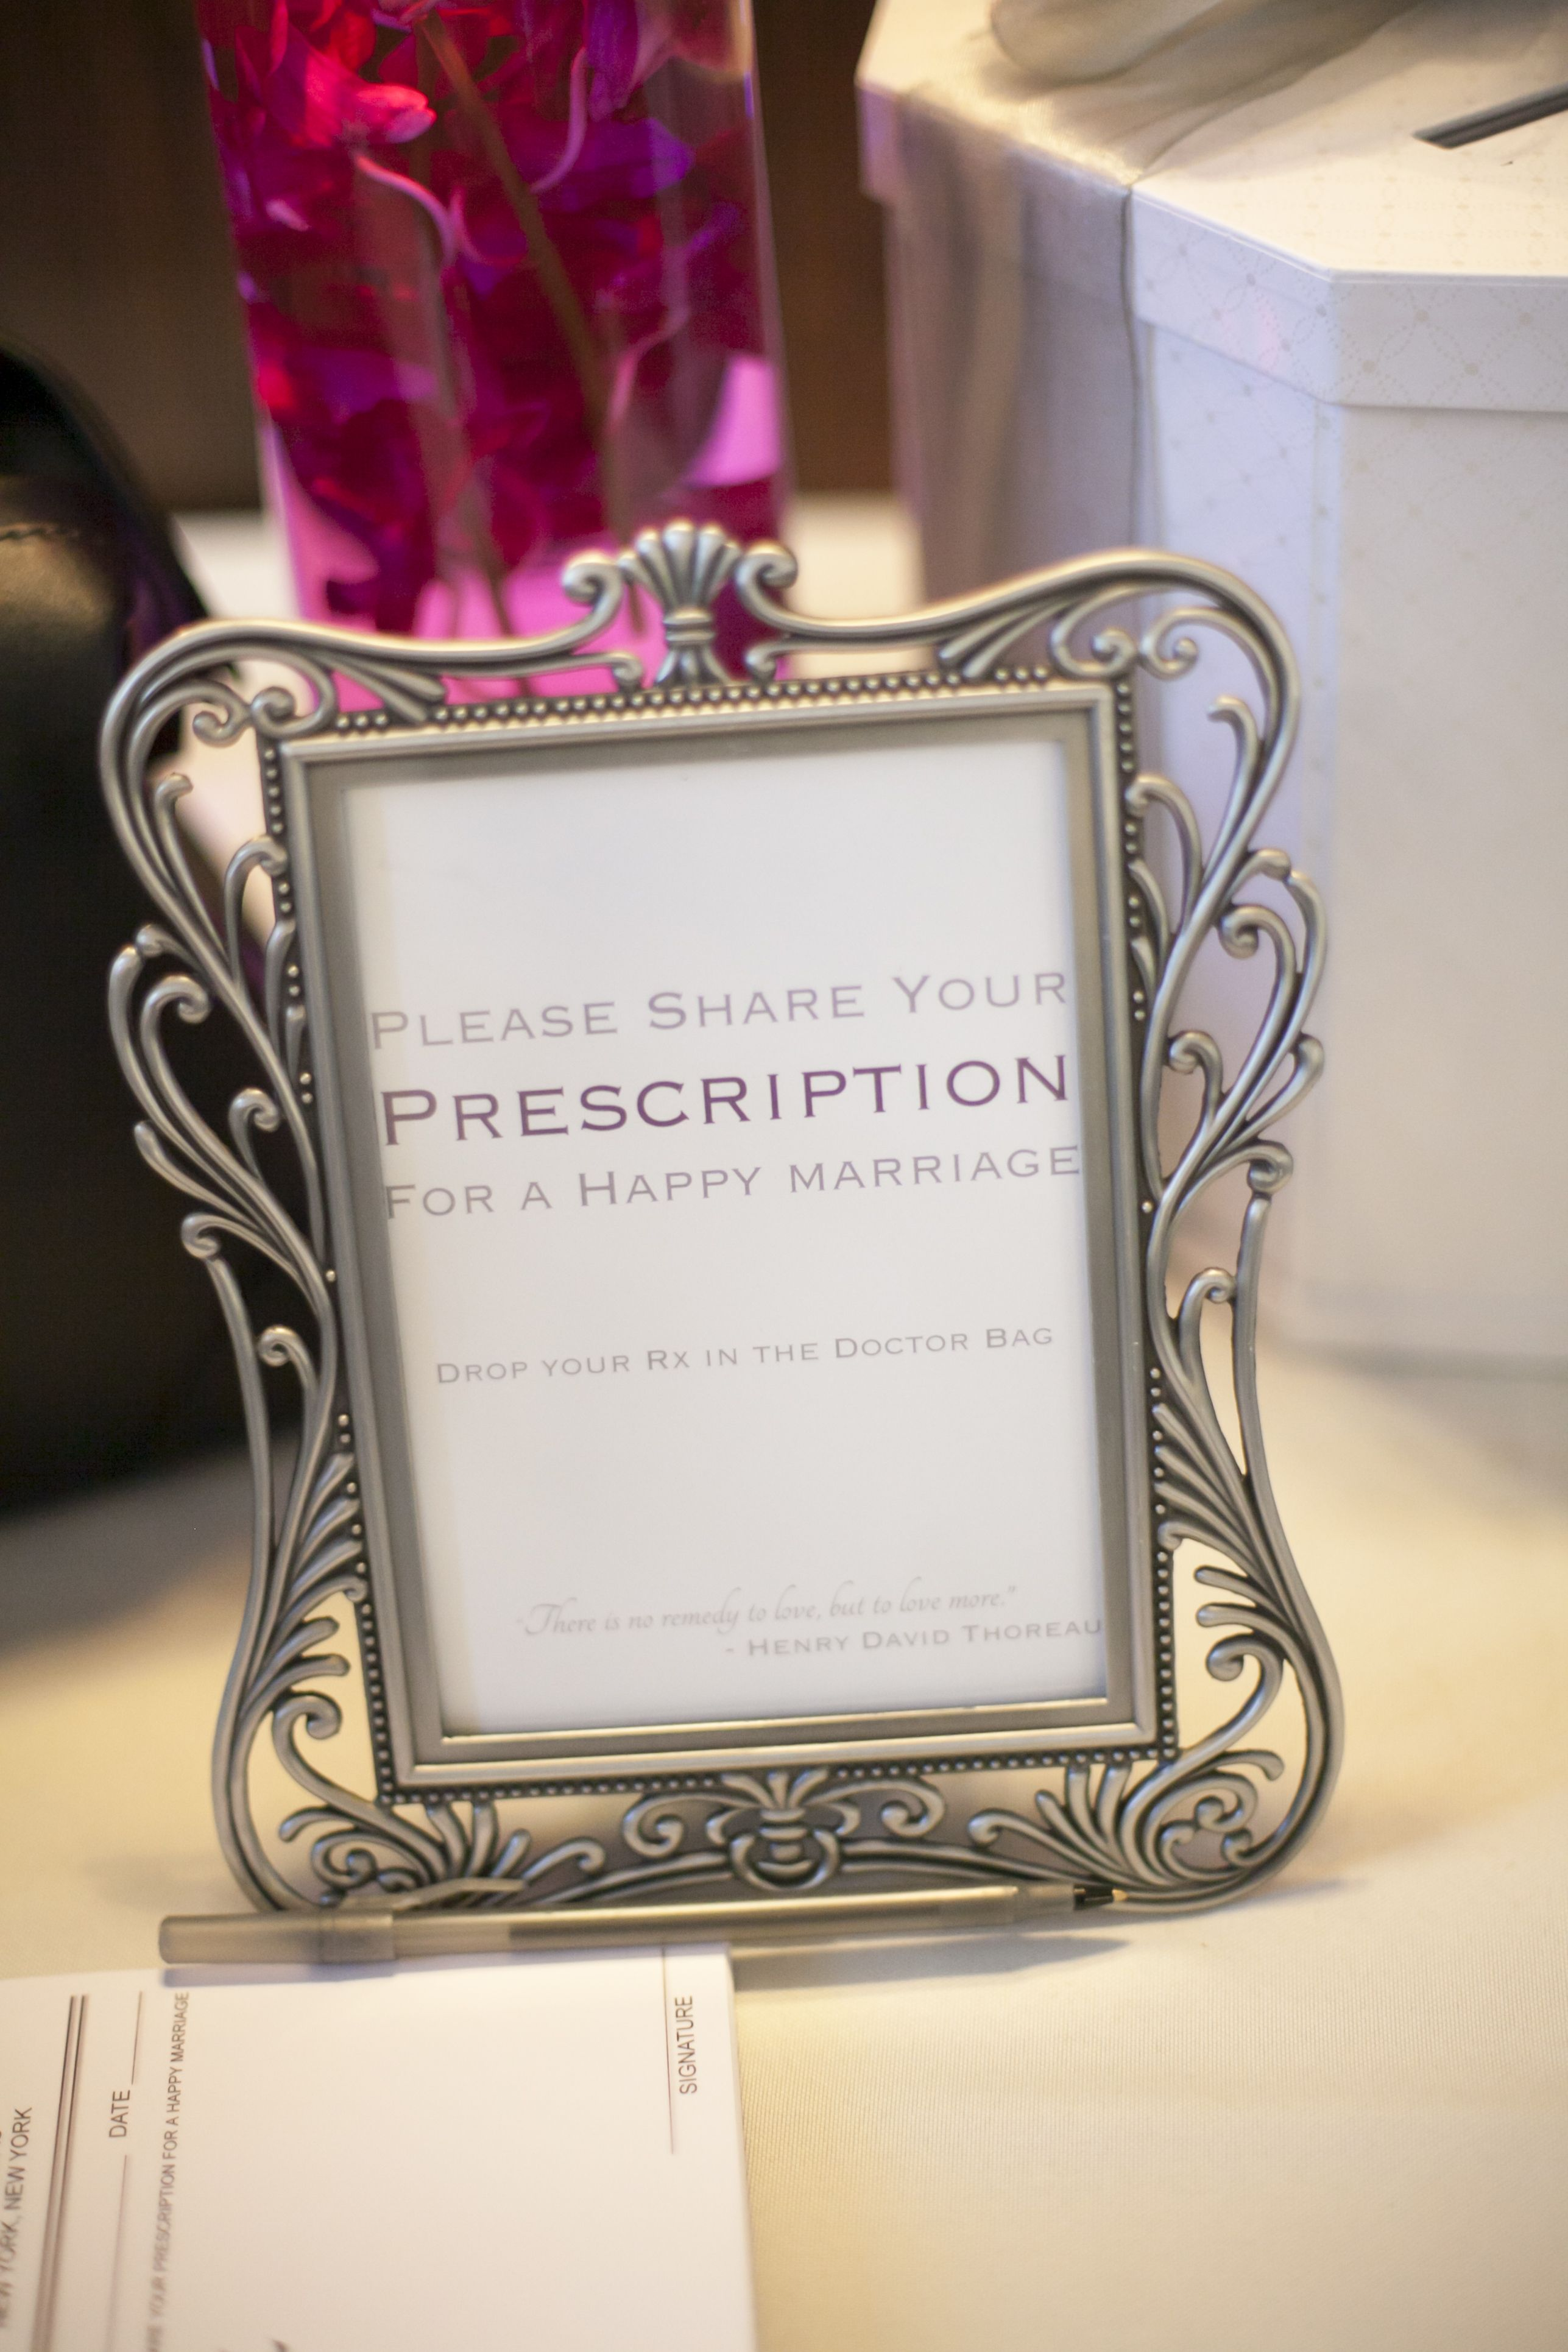 Share Your Prescription for a Happy Marriage since we\'re both PA\'s ...